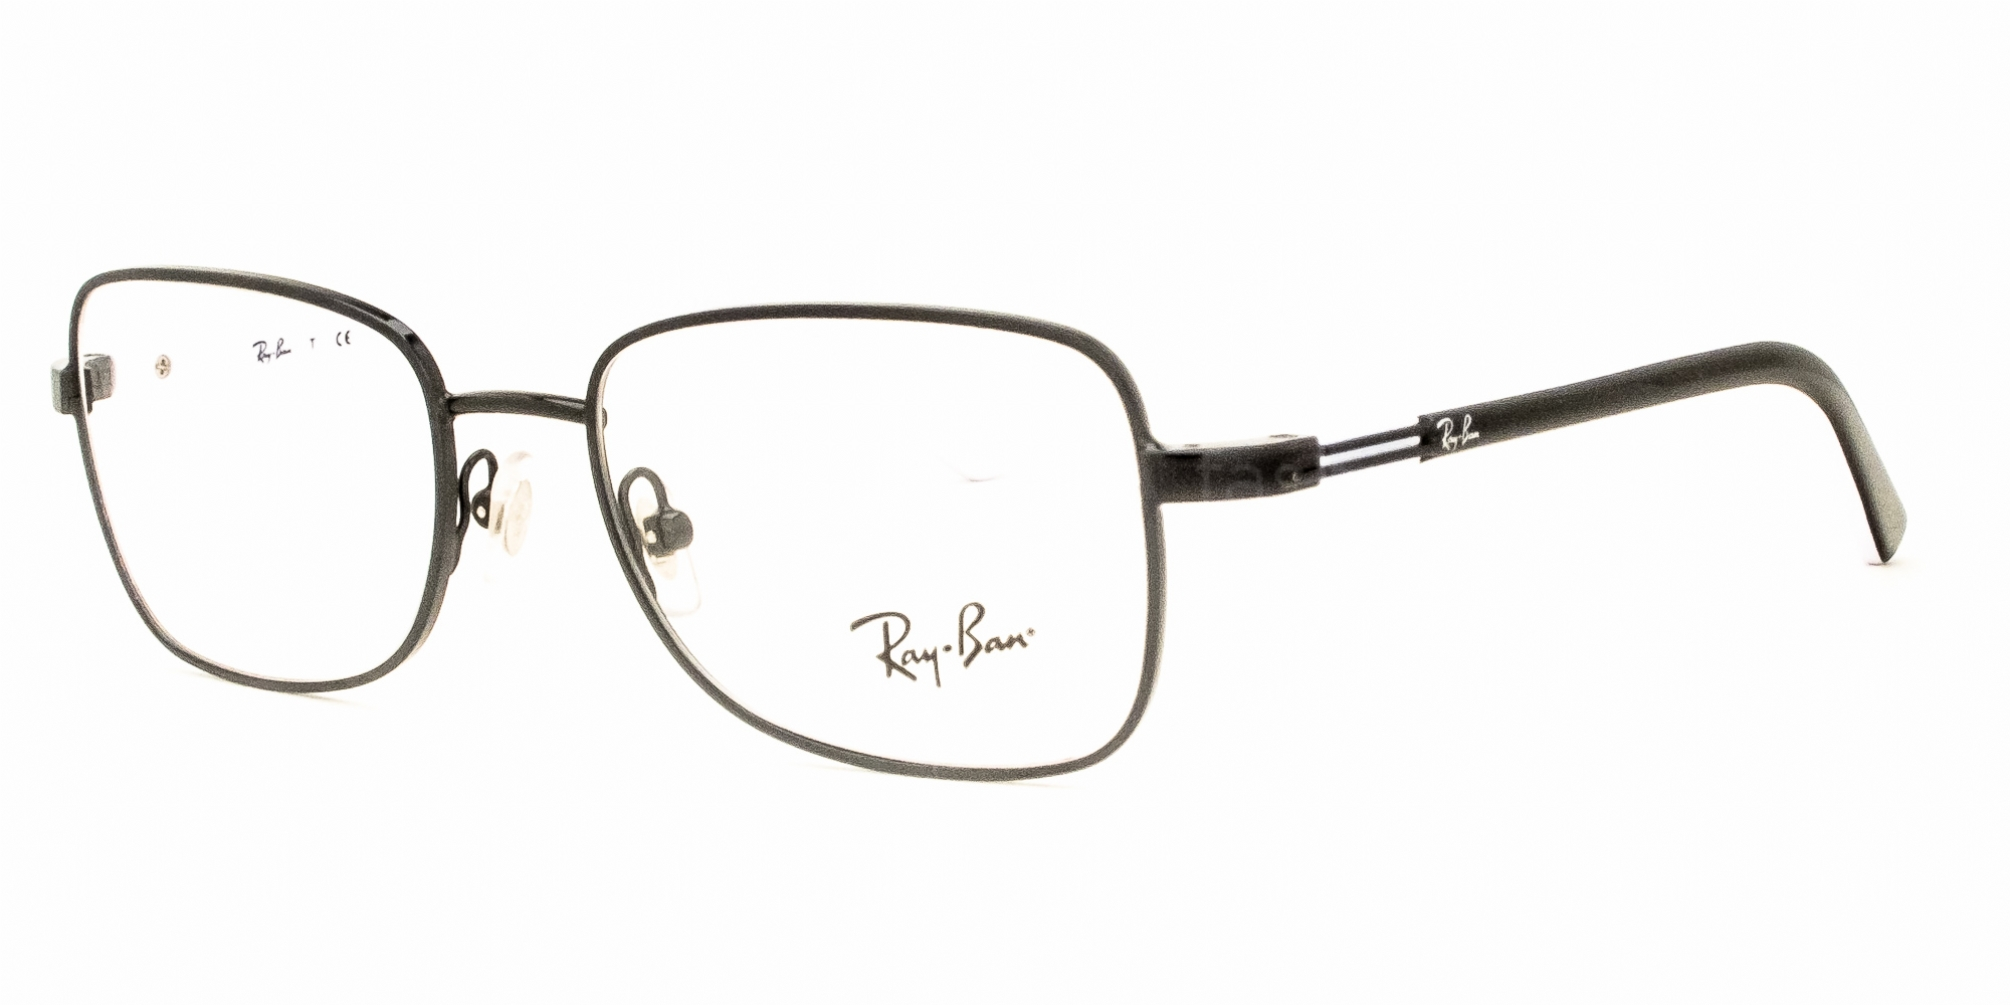 RAY BAN JUNIOR 1036